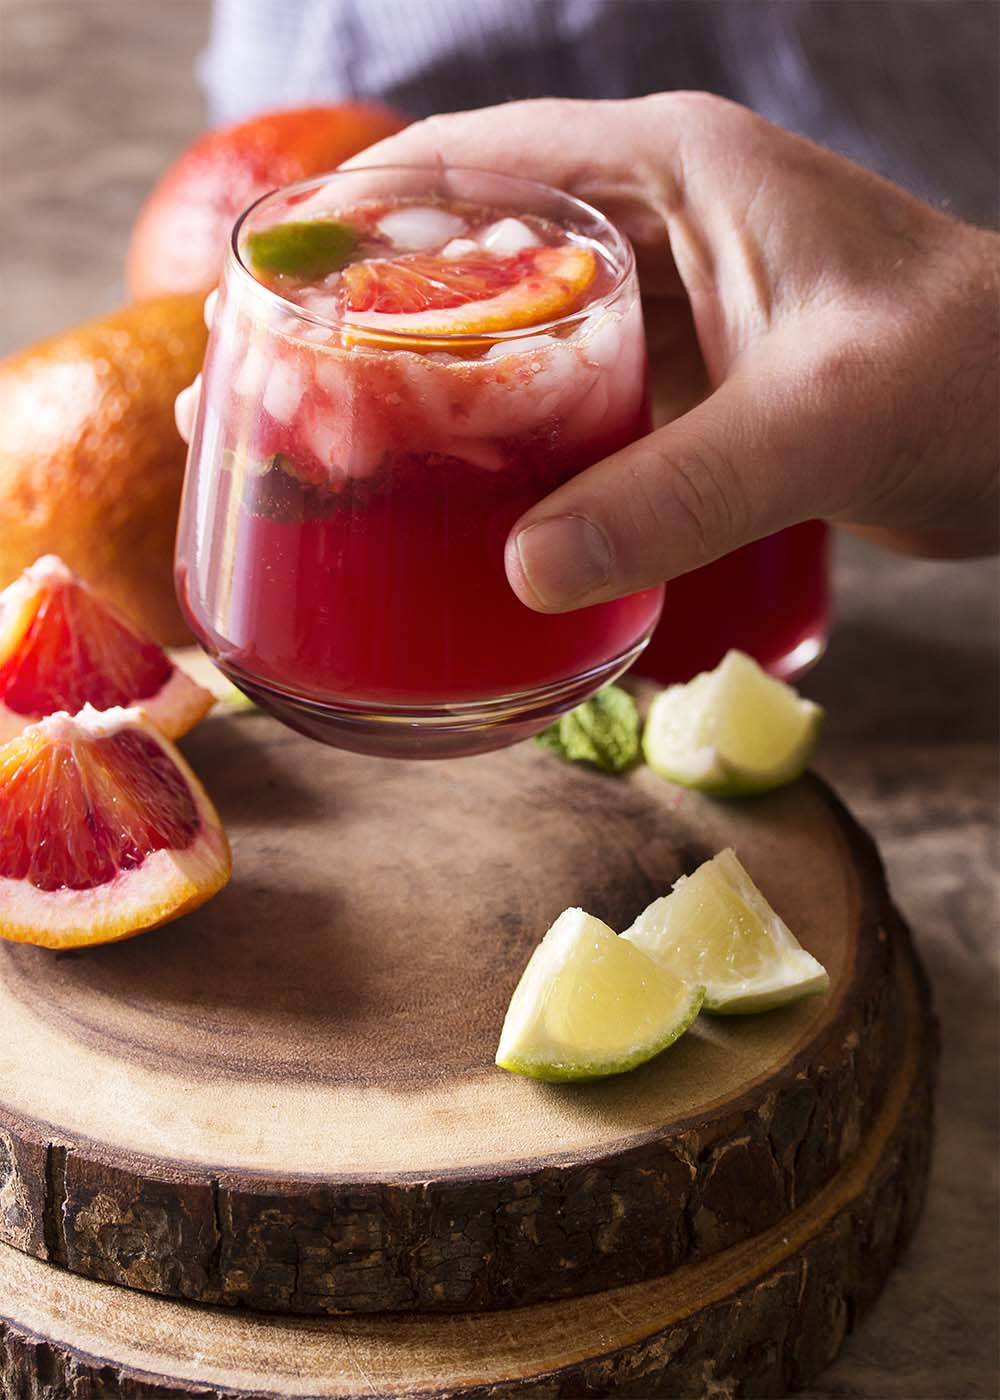 A hand lifting a glass of blood orange Moscow mule with orange and lime slices scattered about.